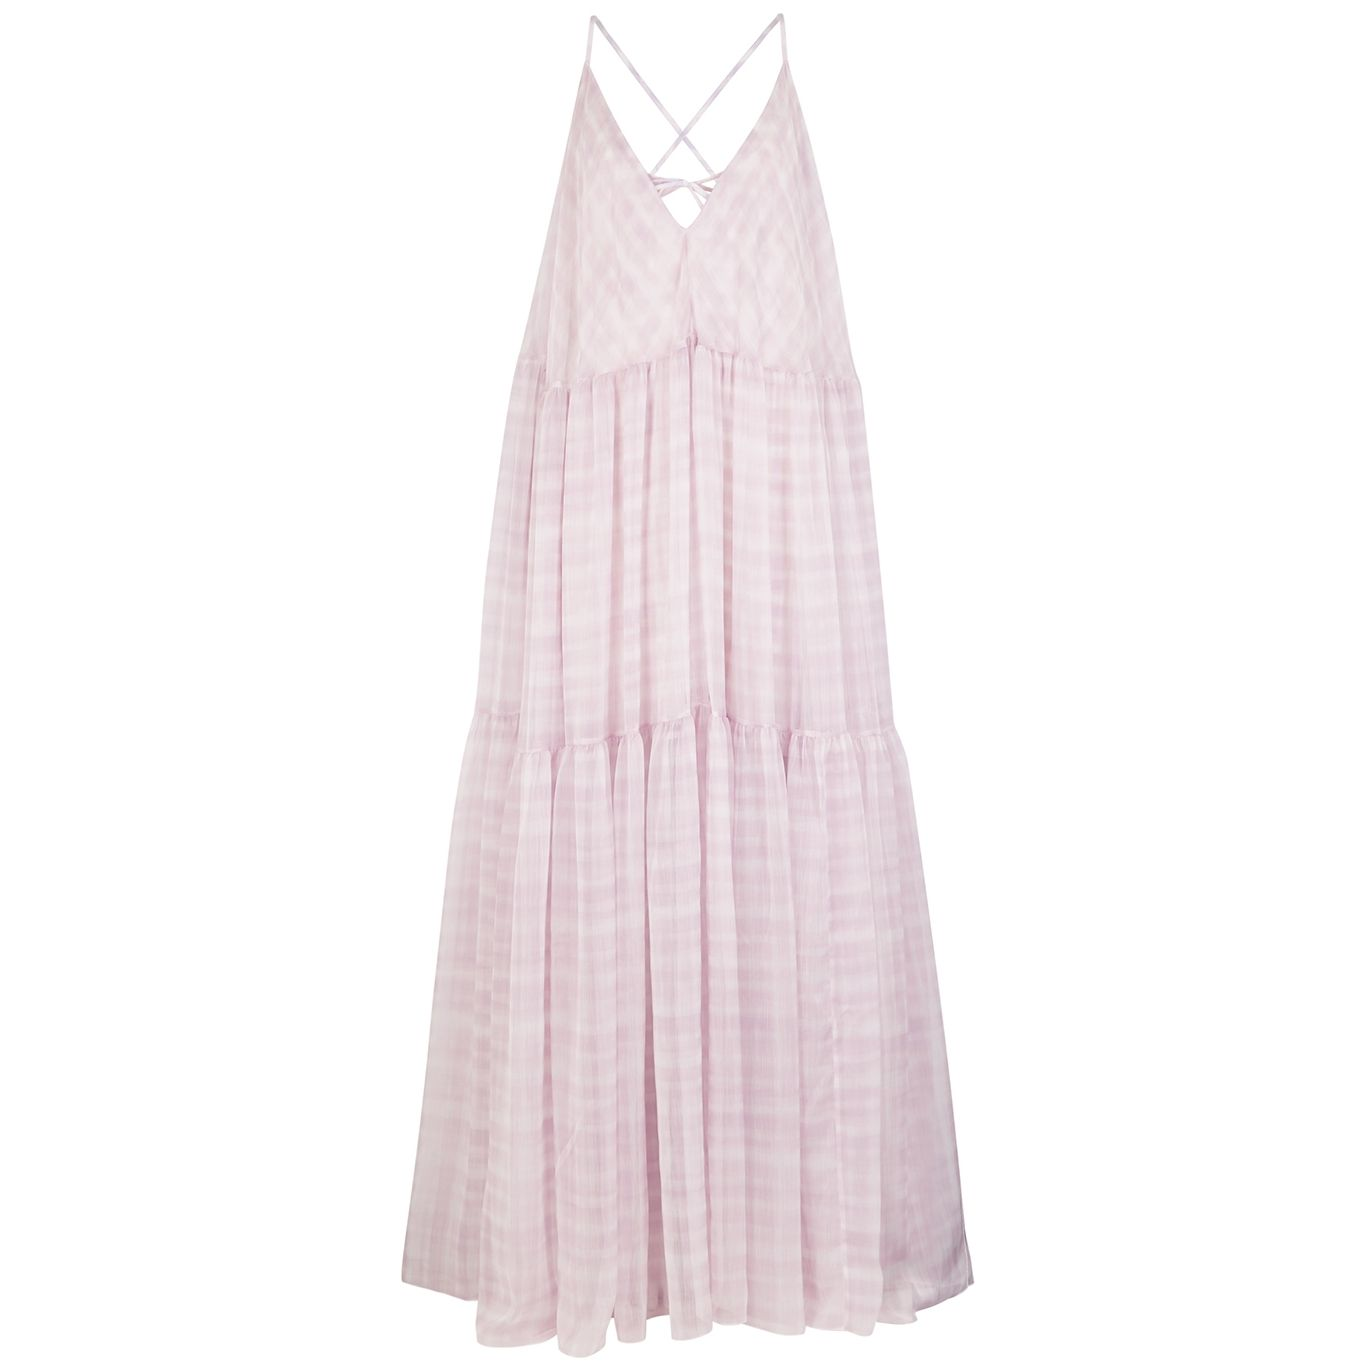 Harvey Nichols's Summer Sale Includes So Many of This Season's It Items